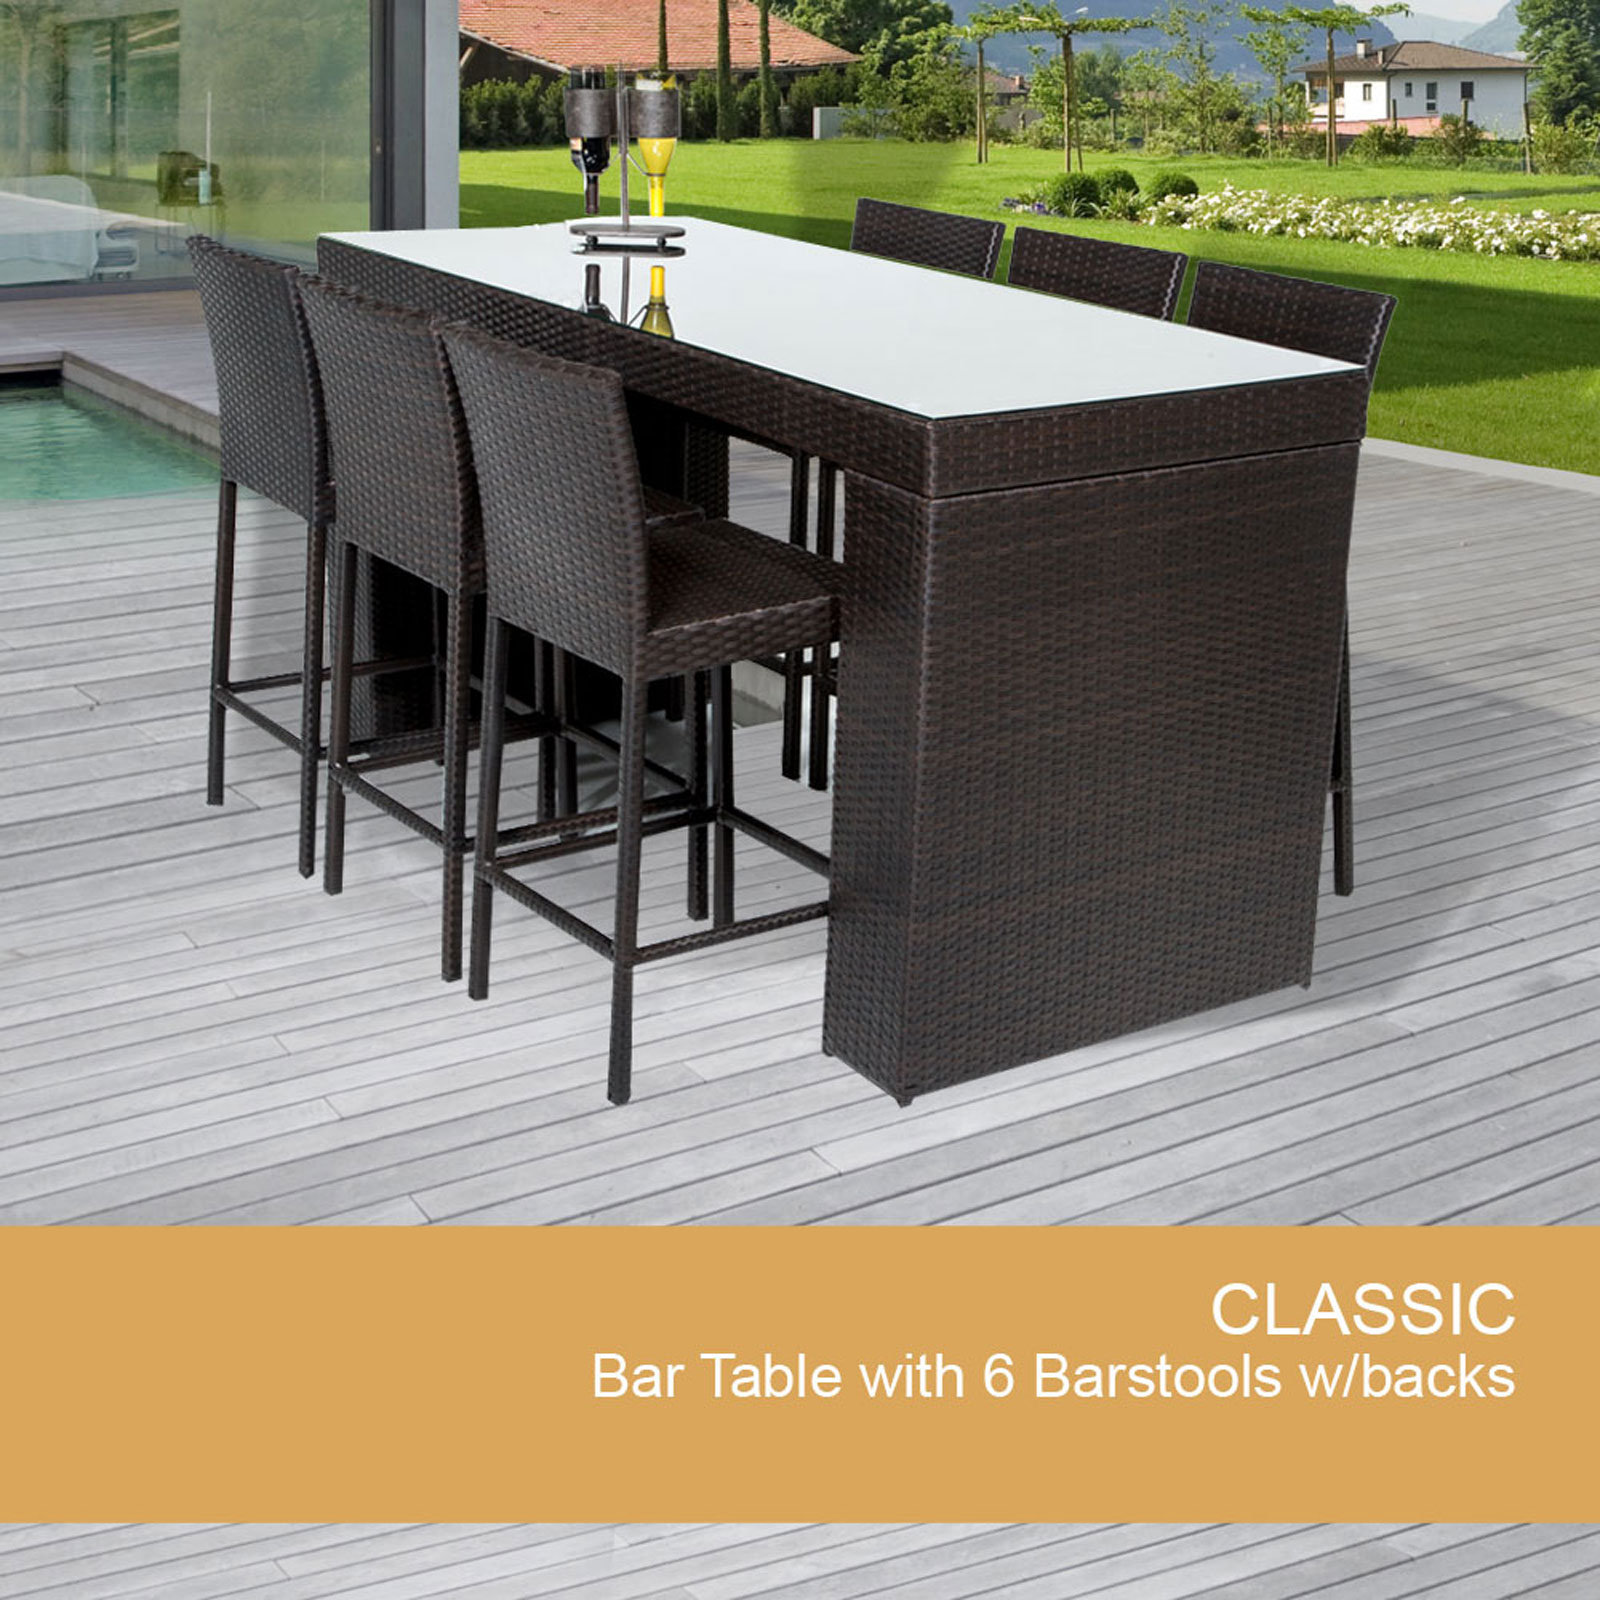 Bar Table Set With Barstools 7 Piece Outdoor Wicker Patio Furniture    Walmart.com